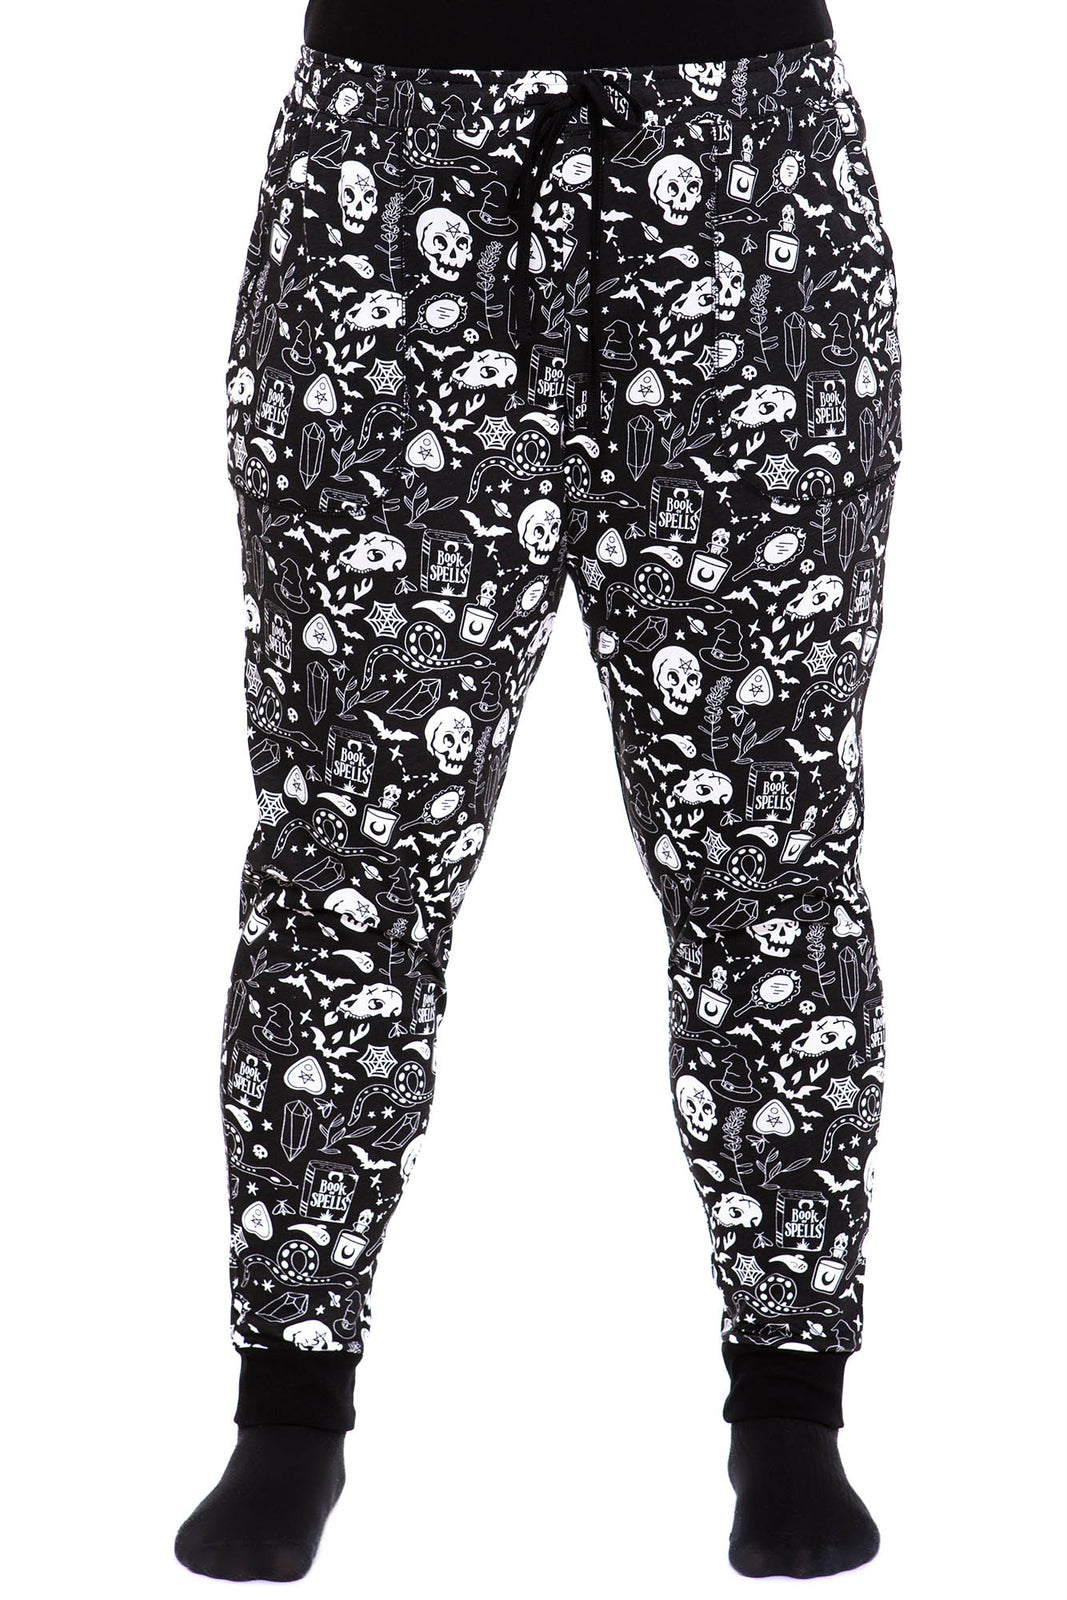 Dark Slumber Lounge Pants [PLUS]